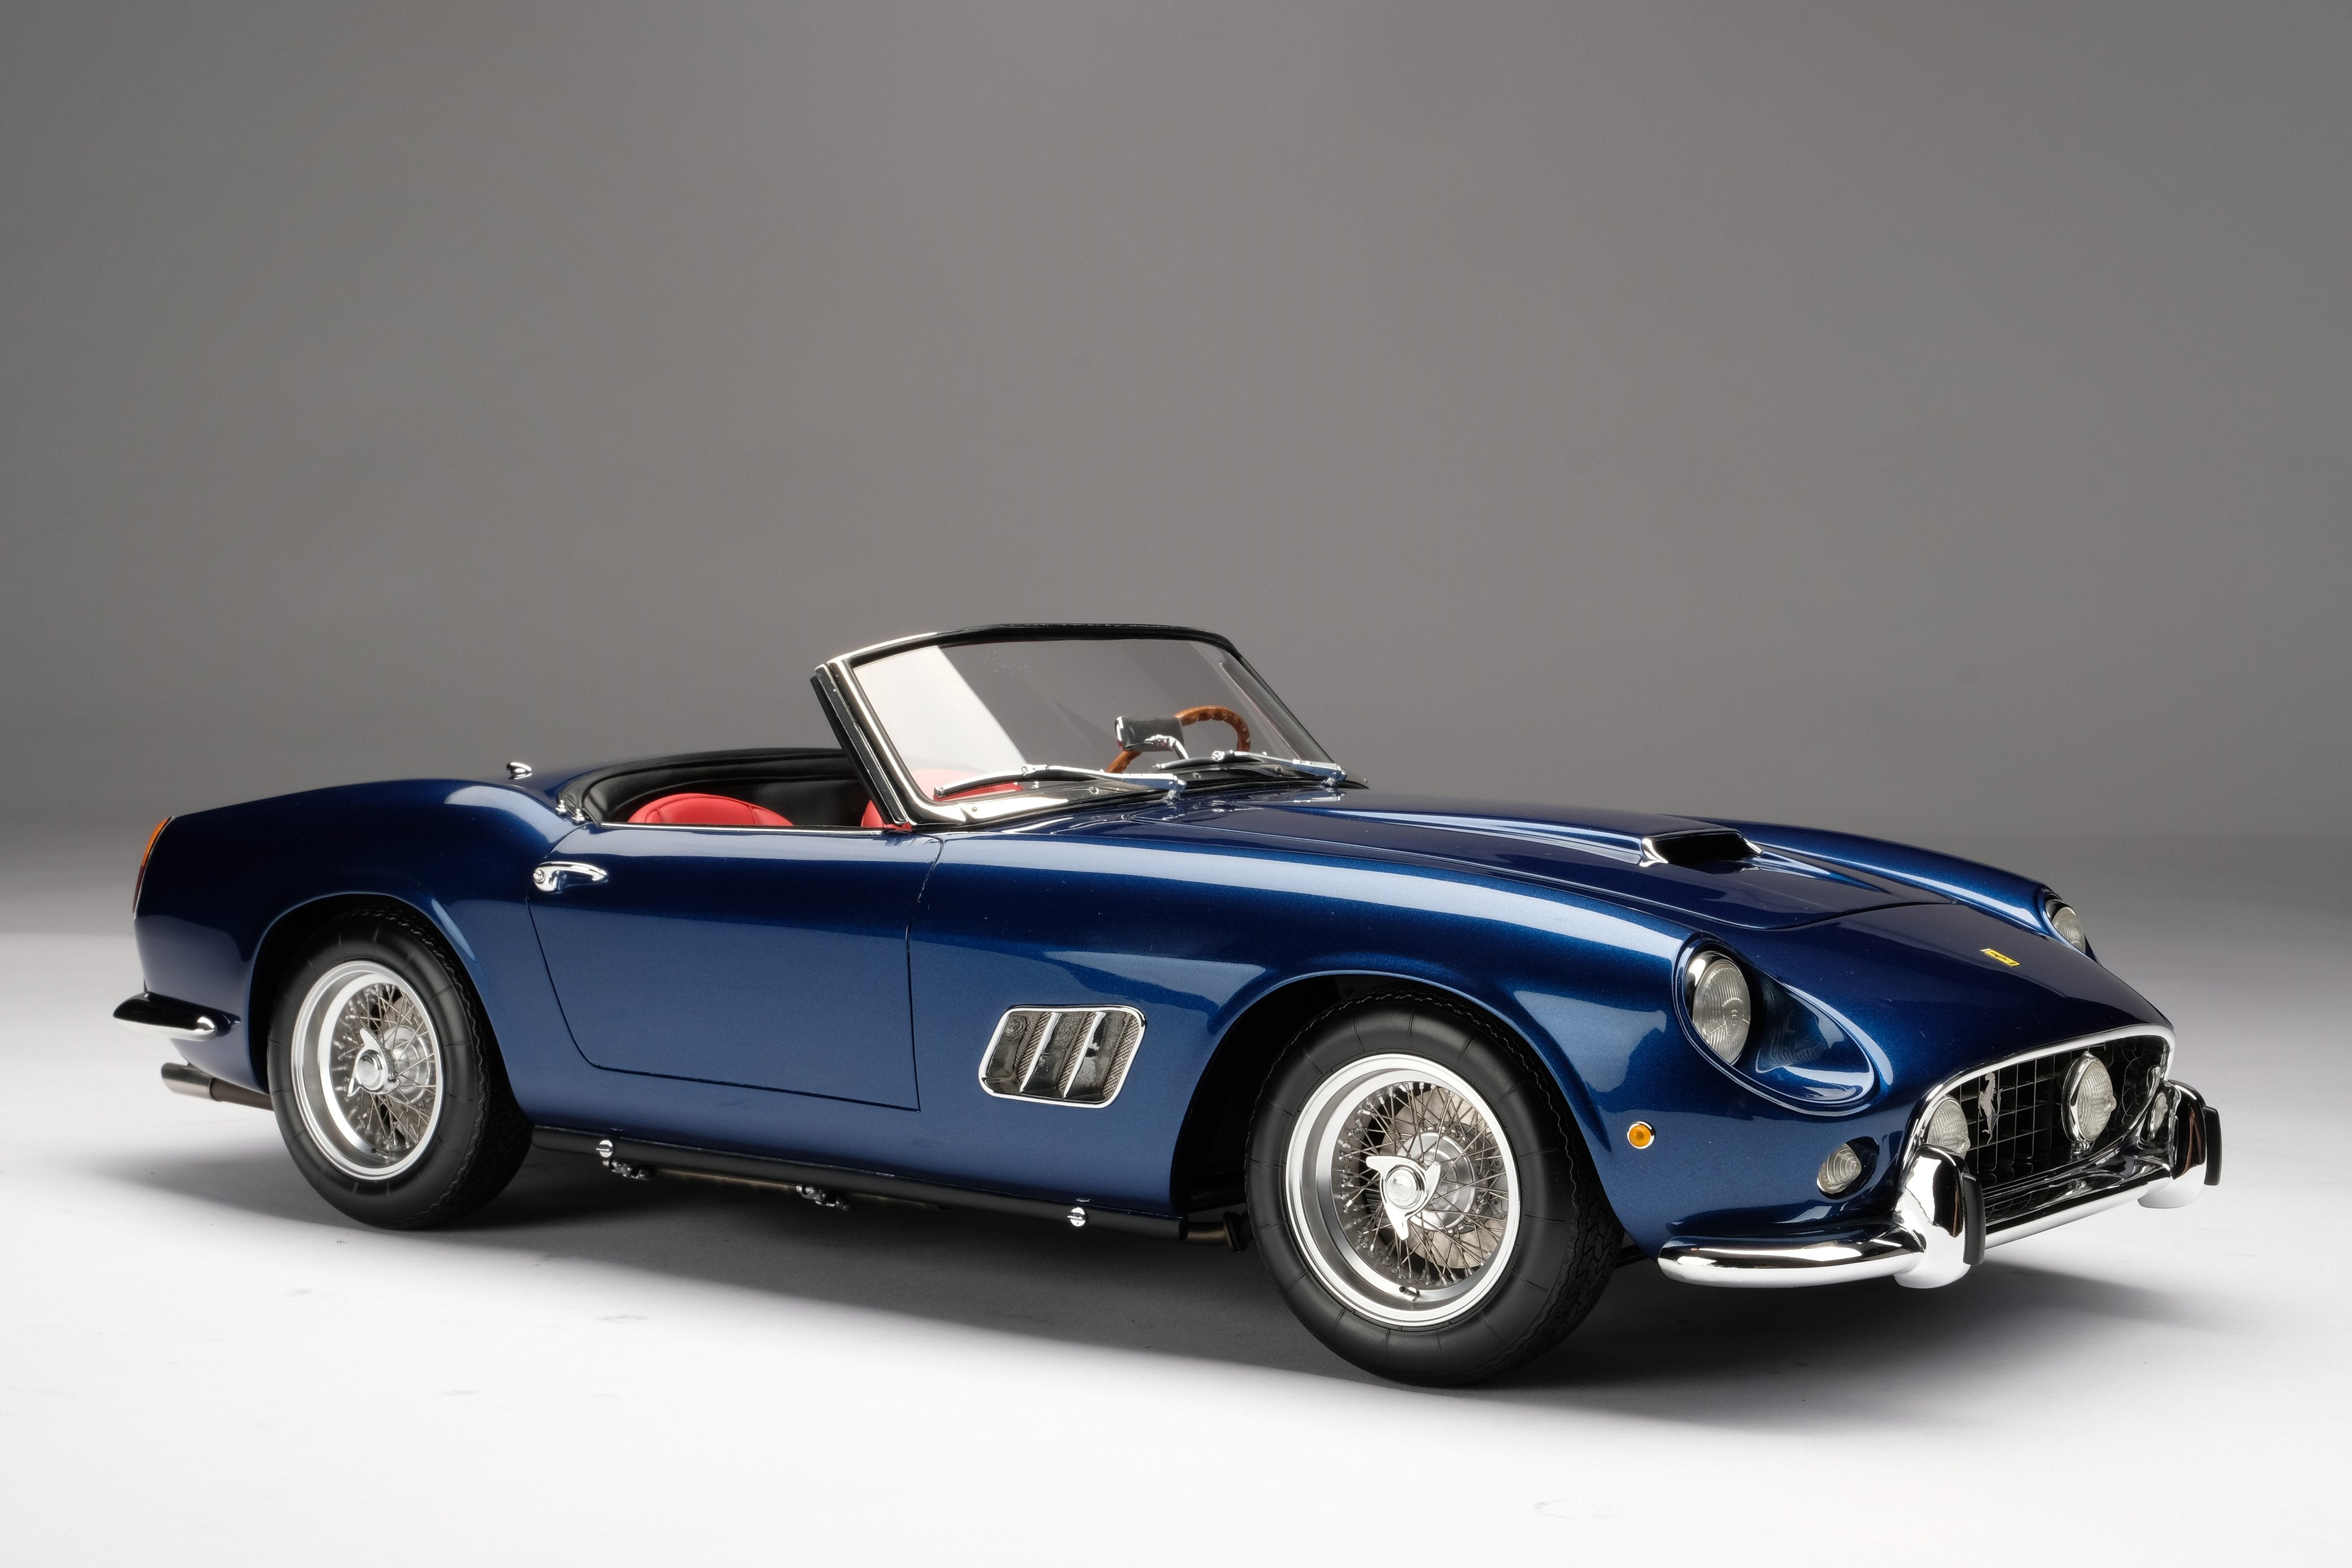 Ferrari 250 Gt California Spyder Swb 1960 Amalgam Collection